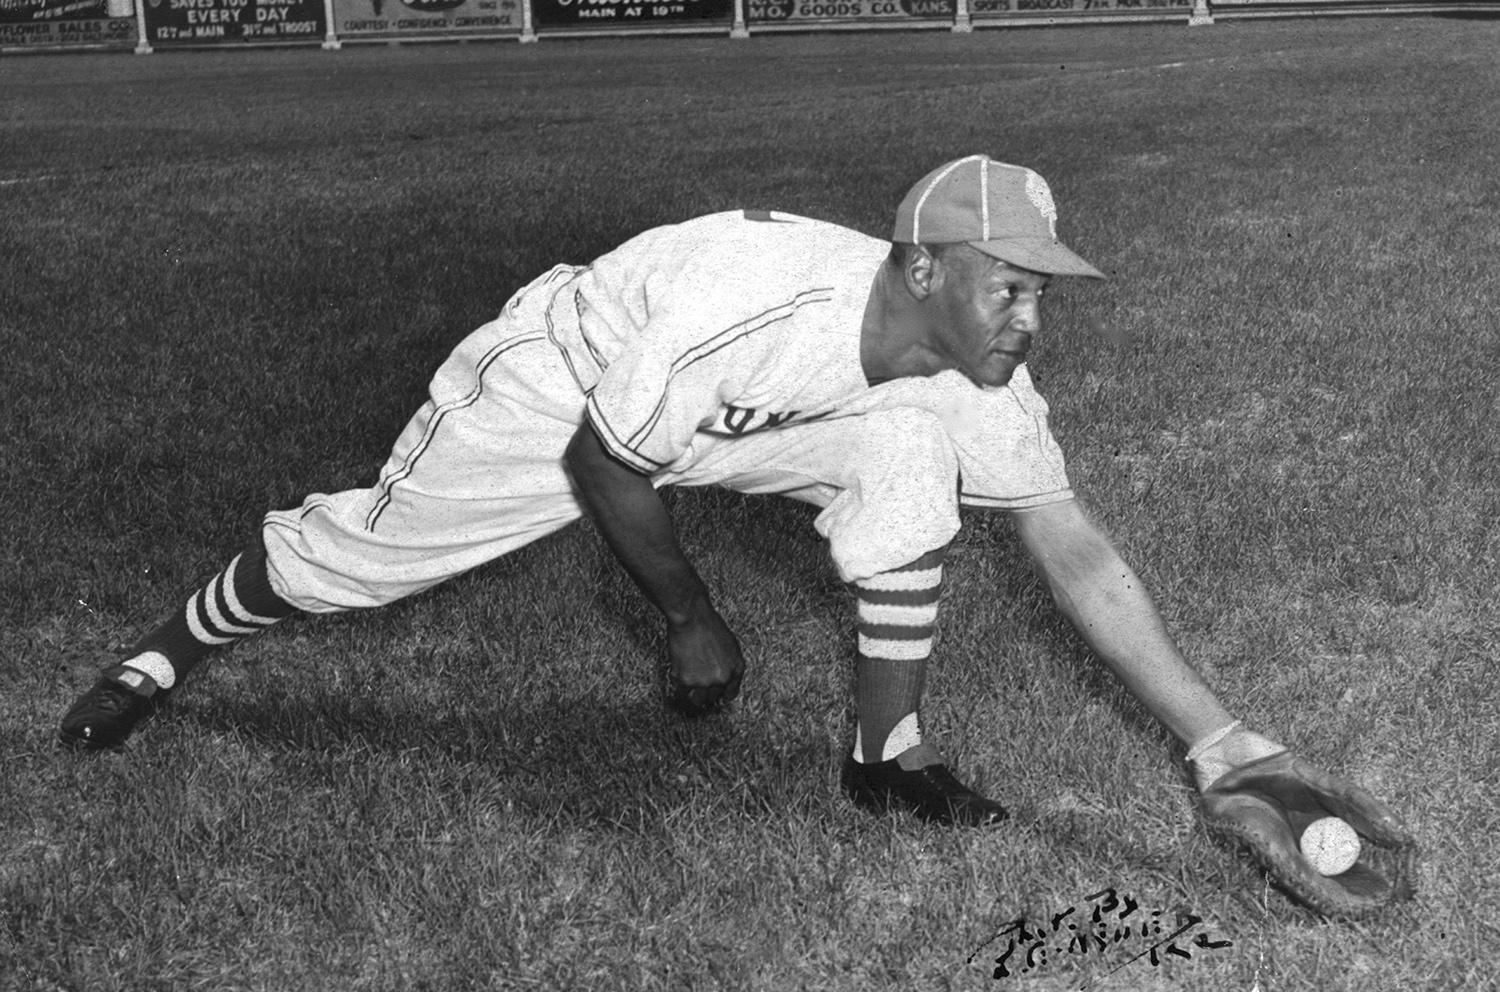 "Buck O'Neill (pictured above) was manager of the Kansas City Monarchs when George Altman made the team in 1955. He taught Altman the proper fundamentals of playing first base, and was reunited with him years later when Altman joined the Chicago Cubs. <a href=""http://collection.baseballhall.org/PASTIME/oneil-buck-fielding-photograph-undated"">PASTIME</a> (National Baseball Hall of Fame and Museum)"